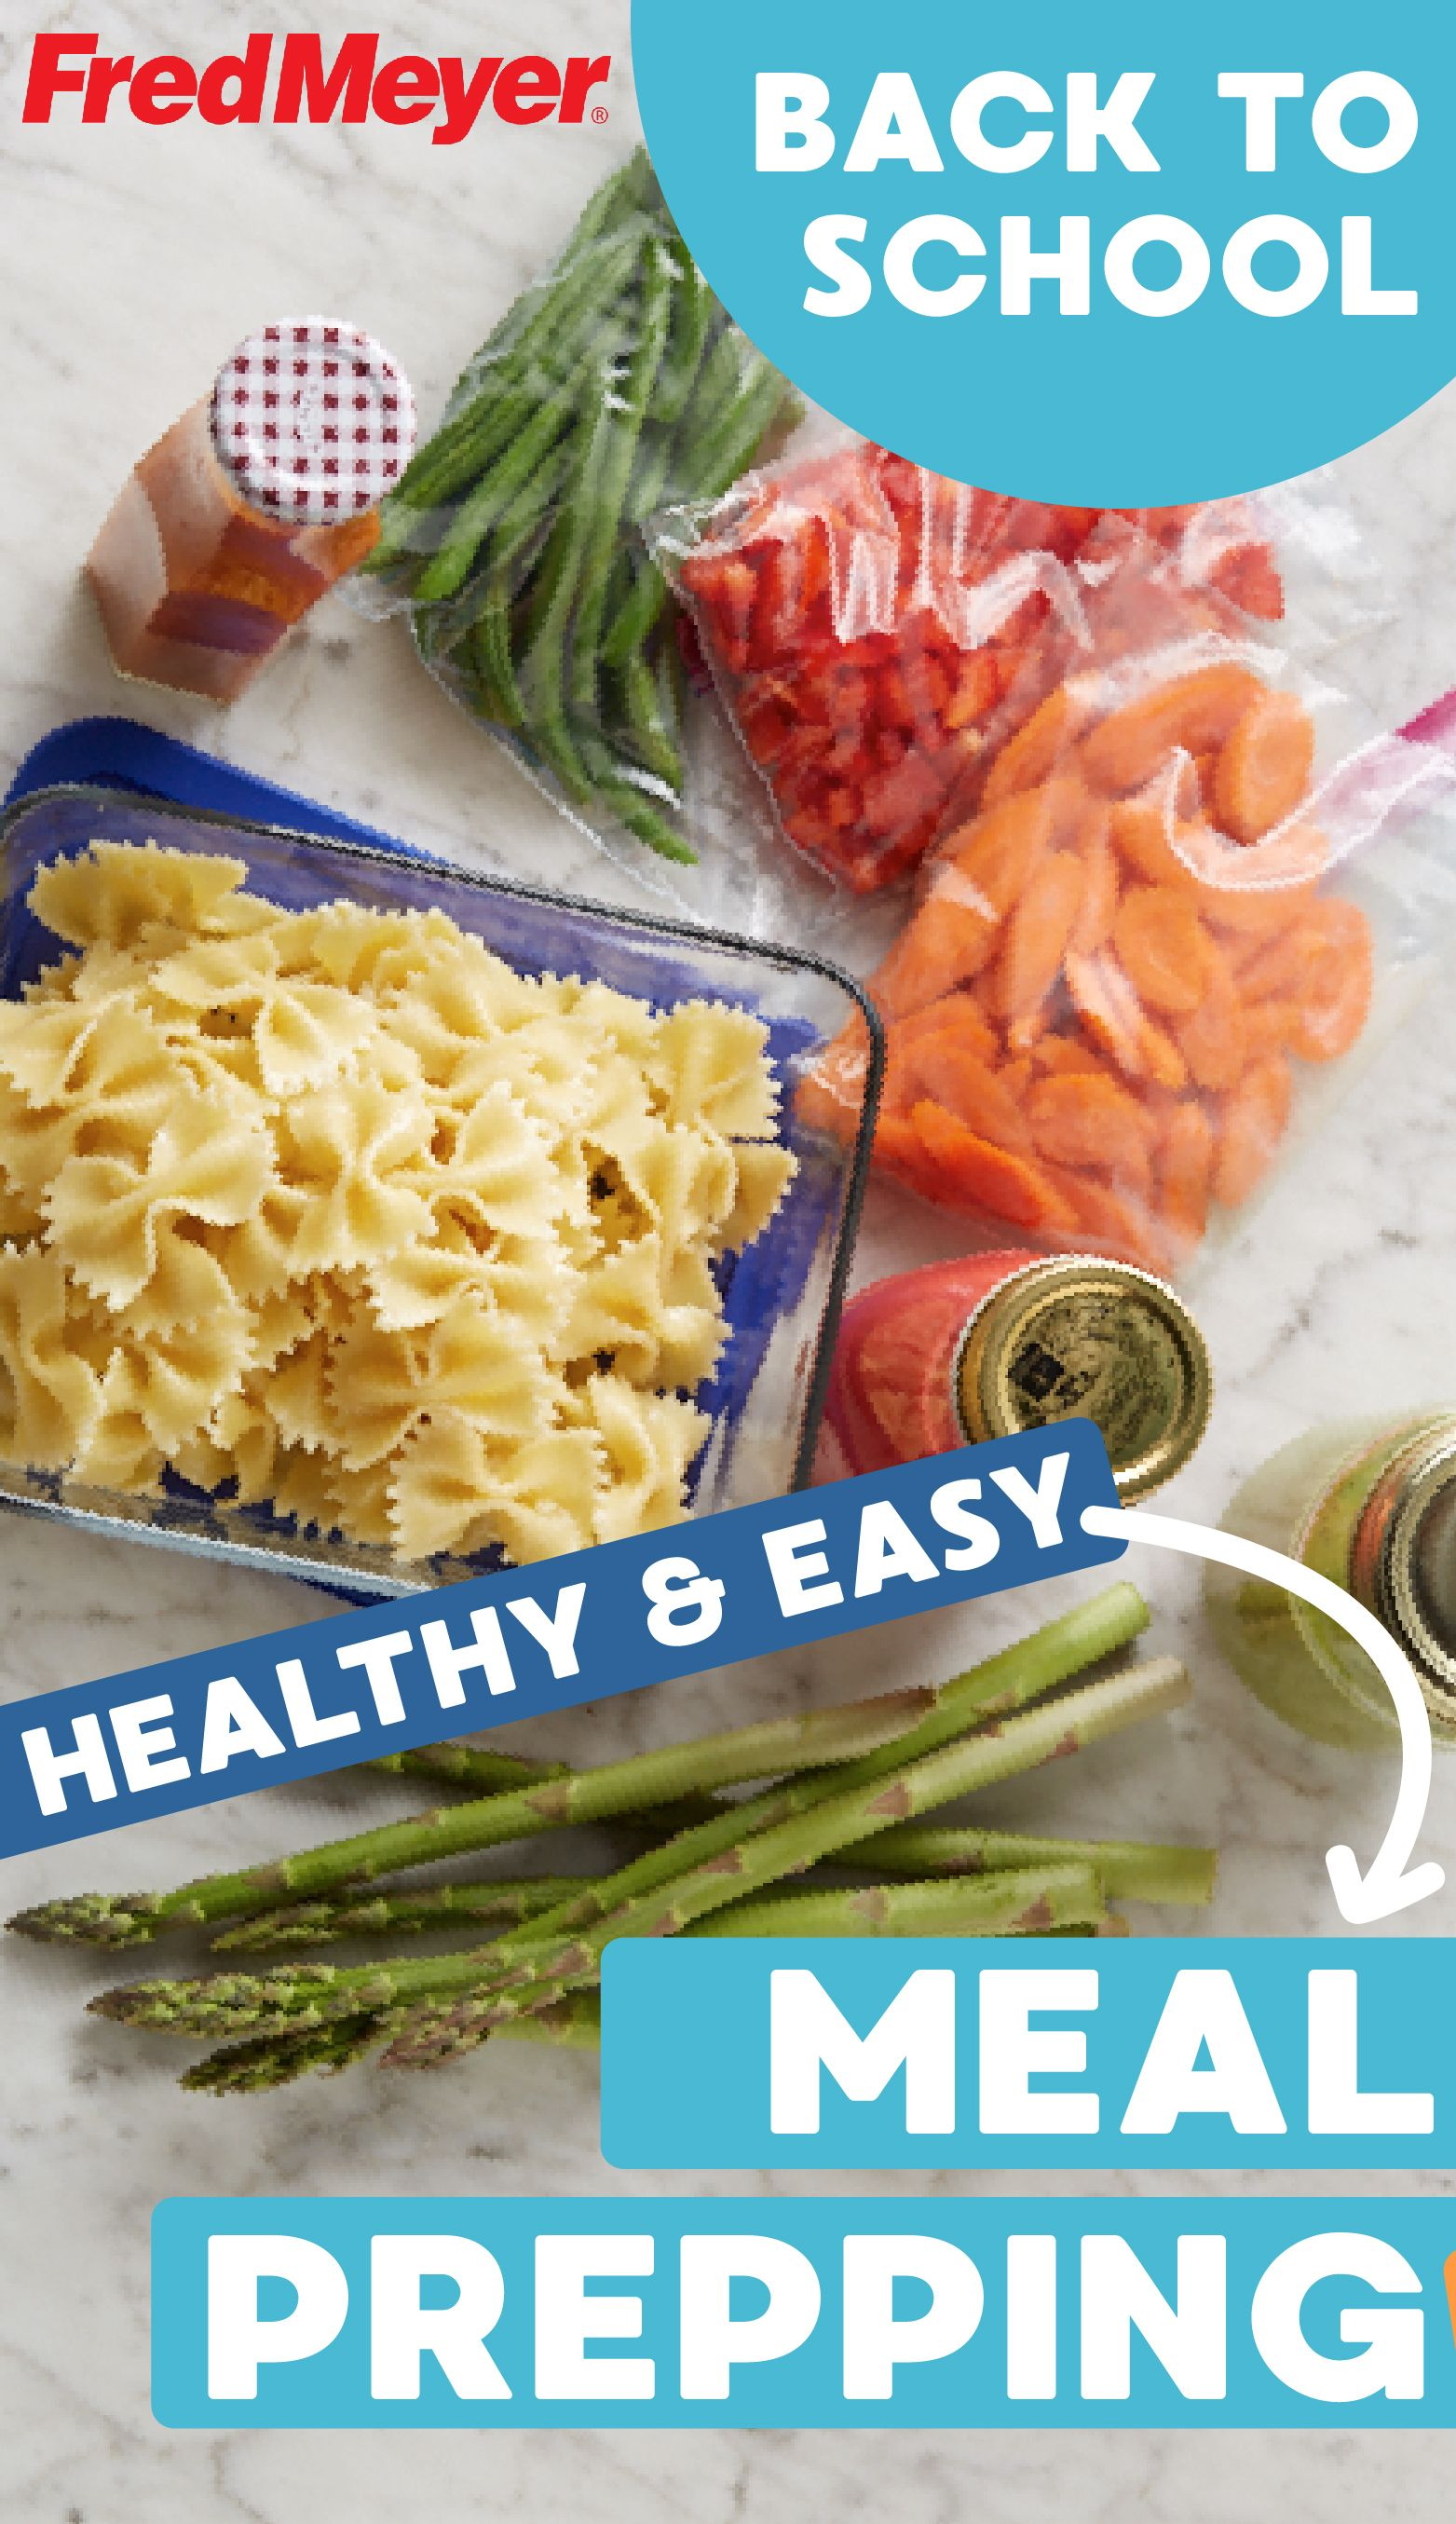 Pasta And Broccoli In Lemon Sauce Fred Meyer Recipe In 2020 Summer Pasta Dishes Vegetarian Recipes Dinner Easy Pasta